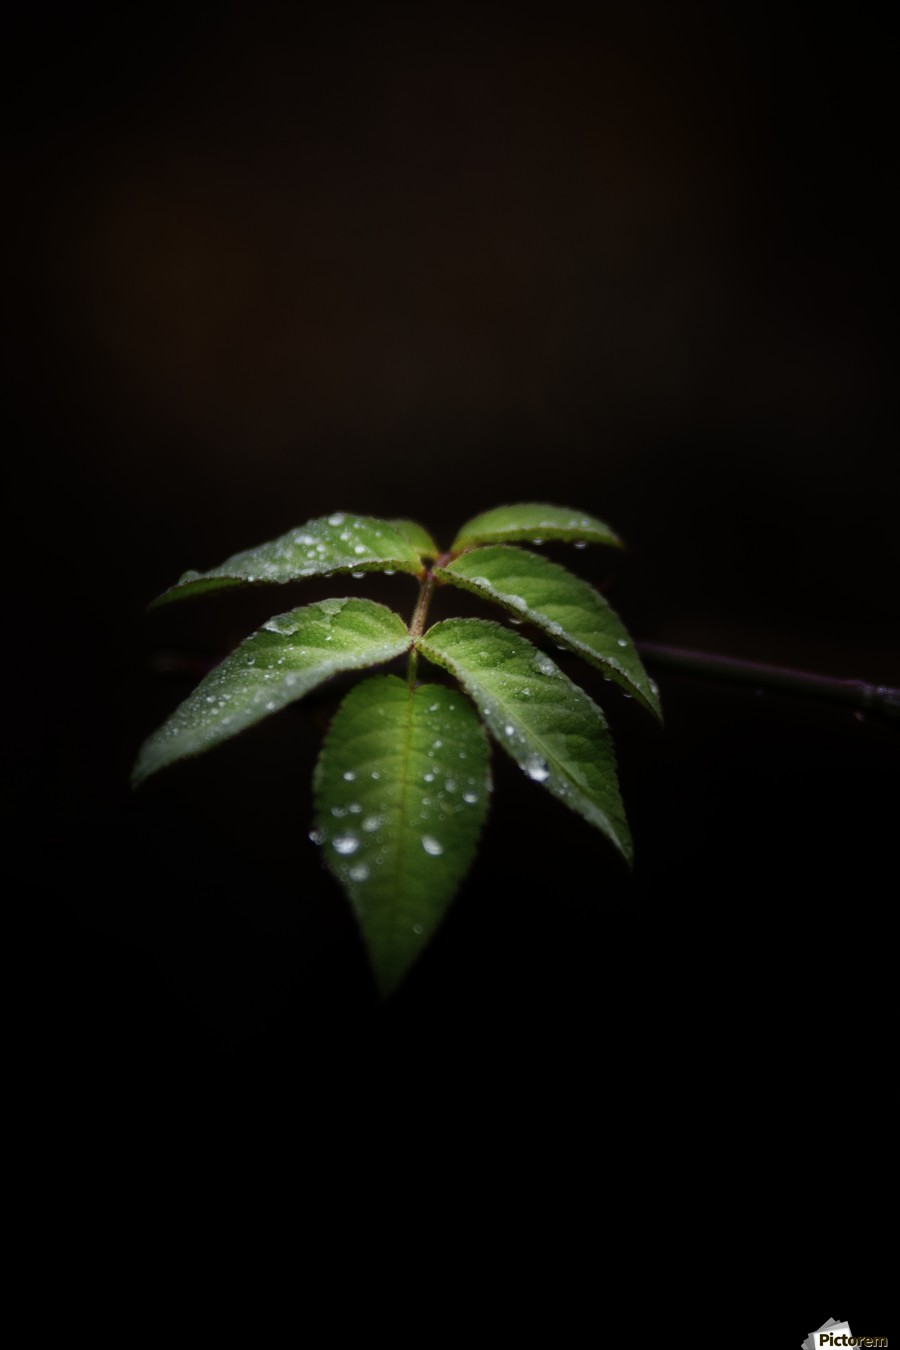 Isolation  , Marko Radovanovic , leaf, leaves, isolated, darkness, alone, thorn, green, center,